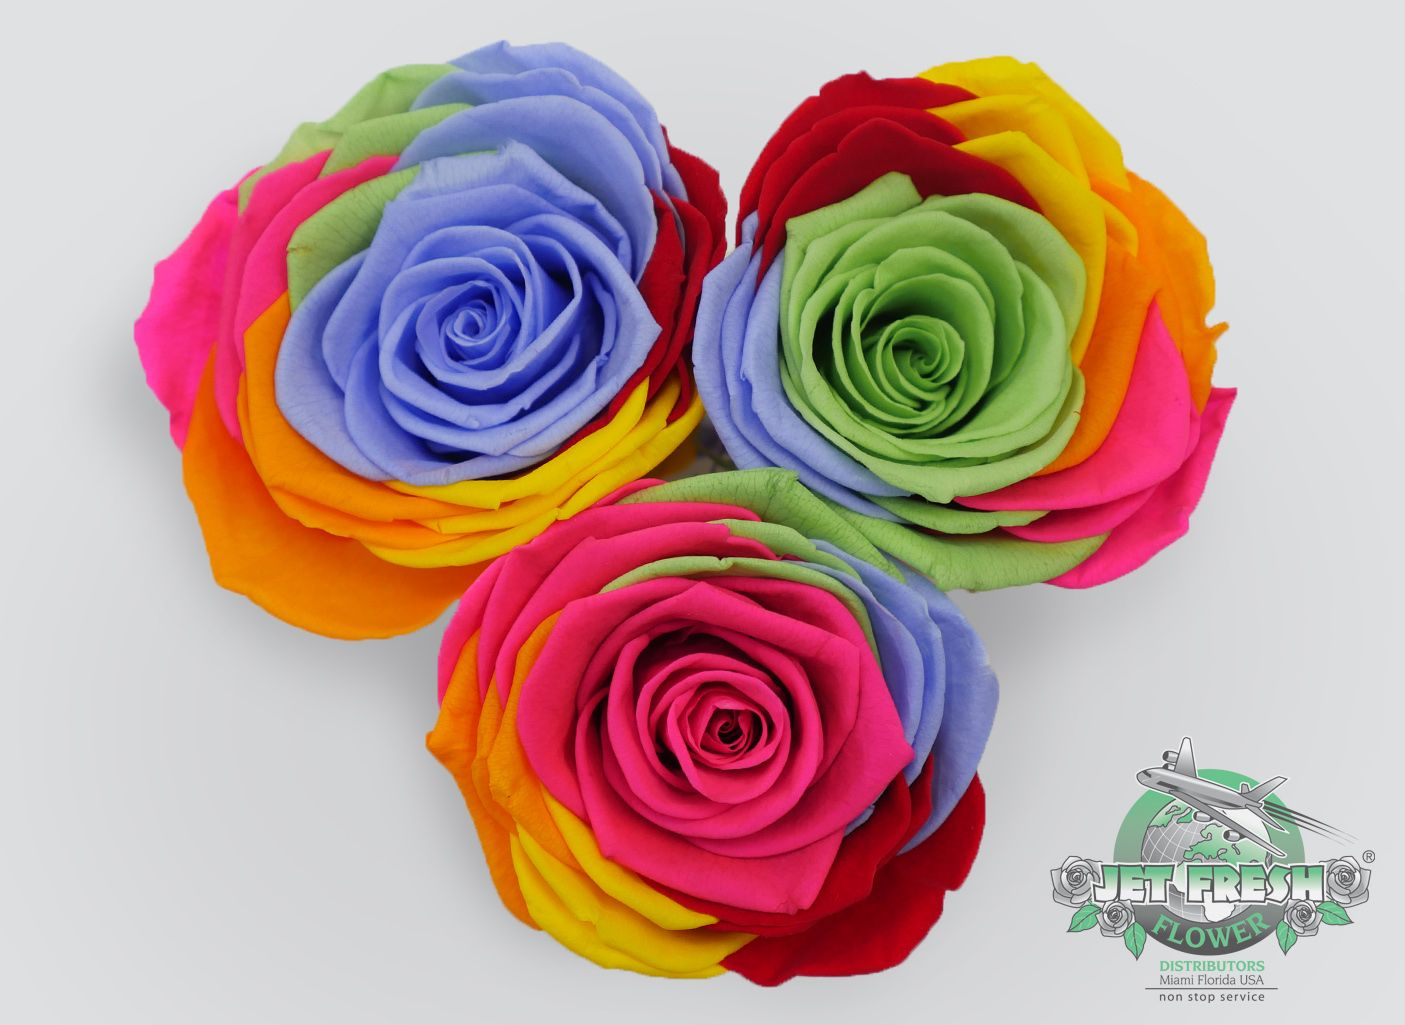 Rainbow colors in order pictures -  Rainbow Preserved Roses Are Available Now In Different Color Combinations Contact Jet Fresh